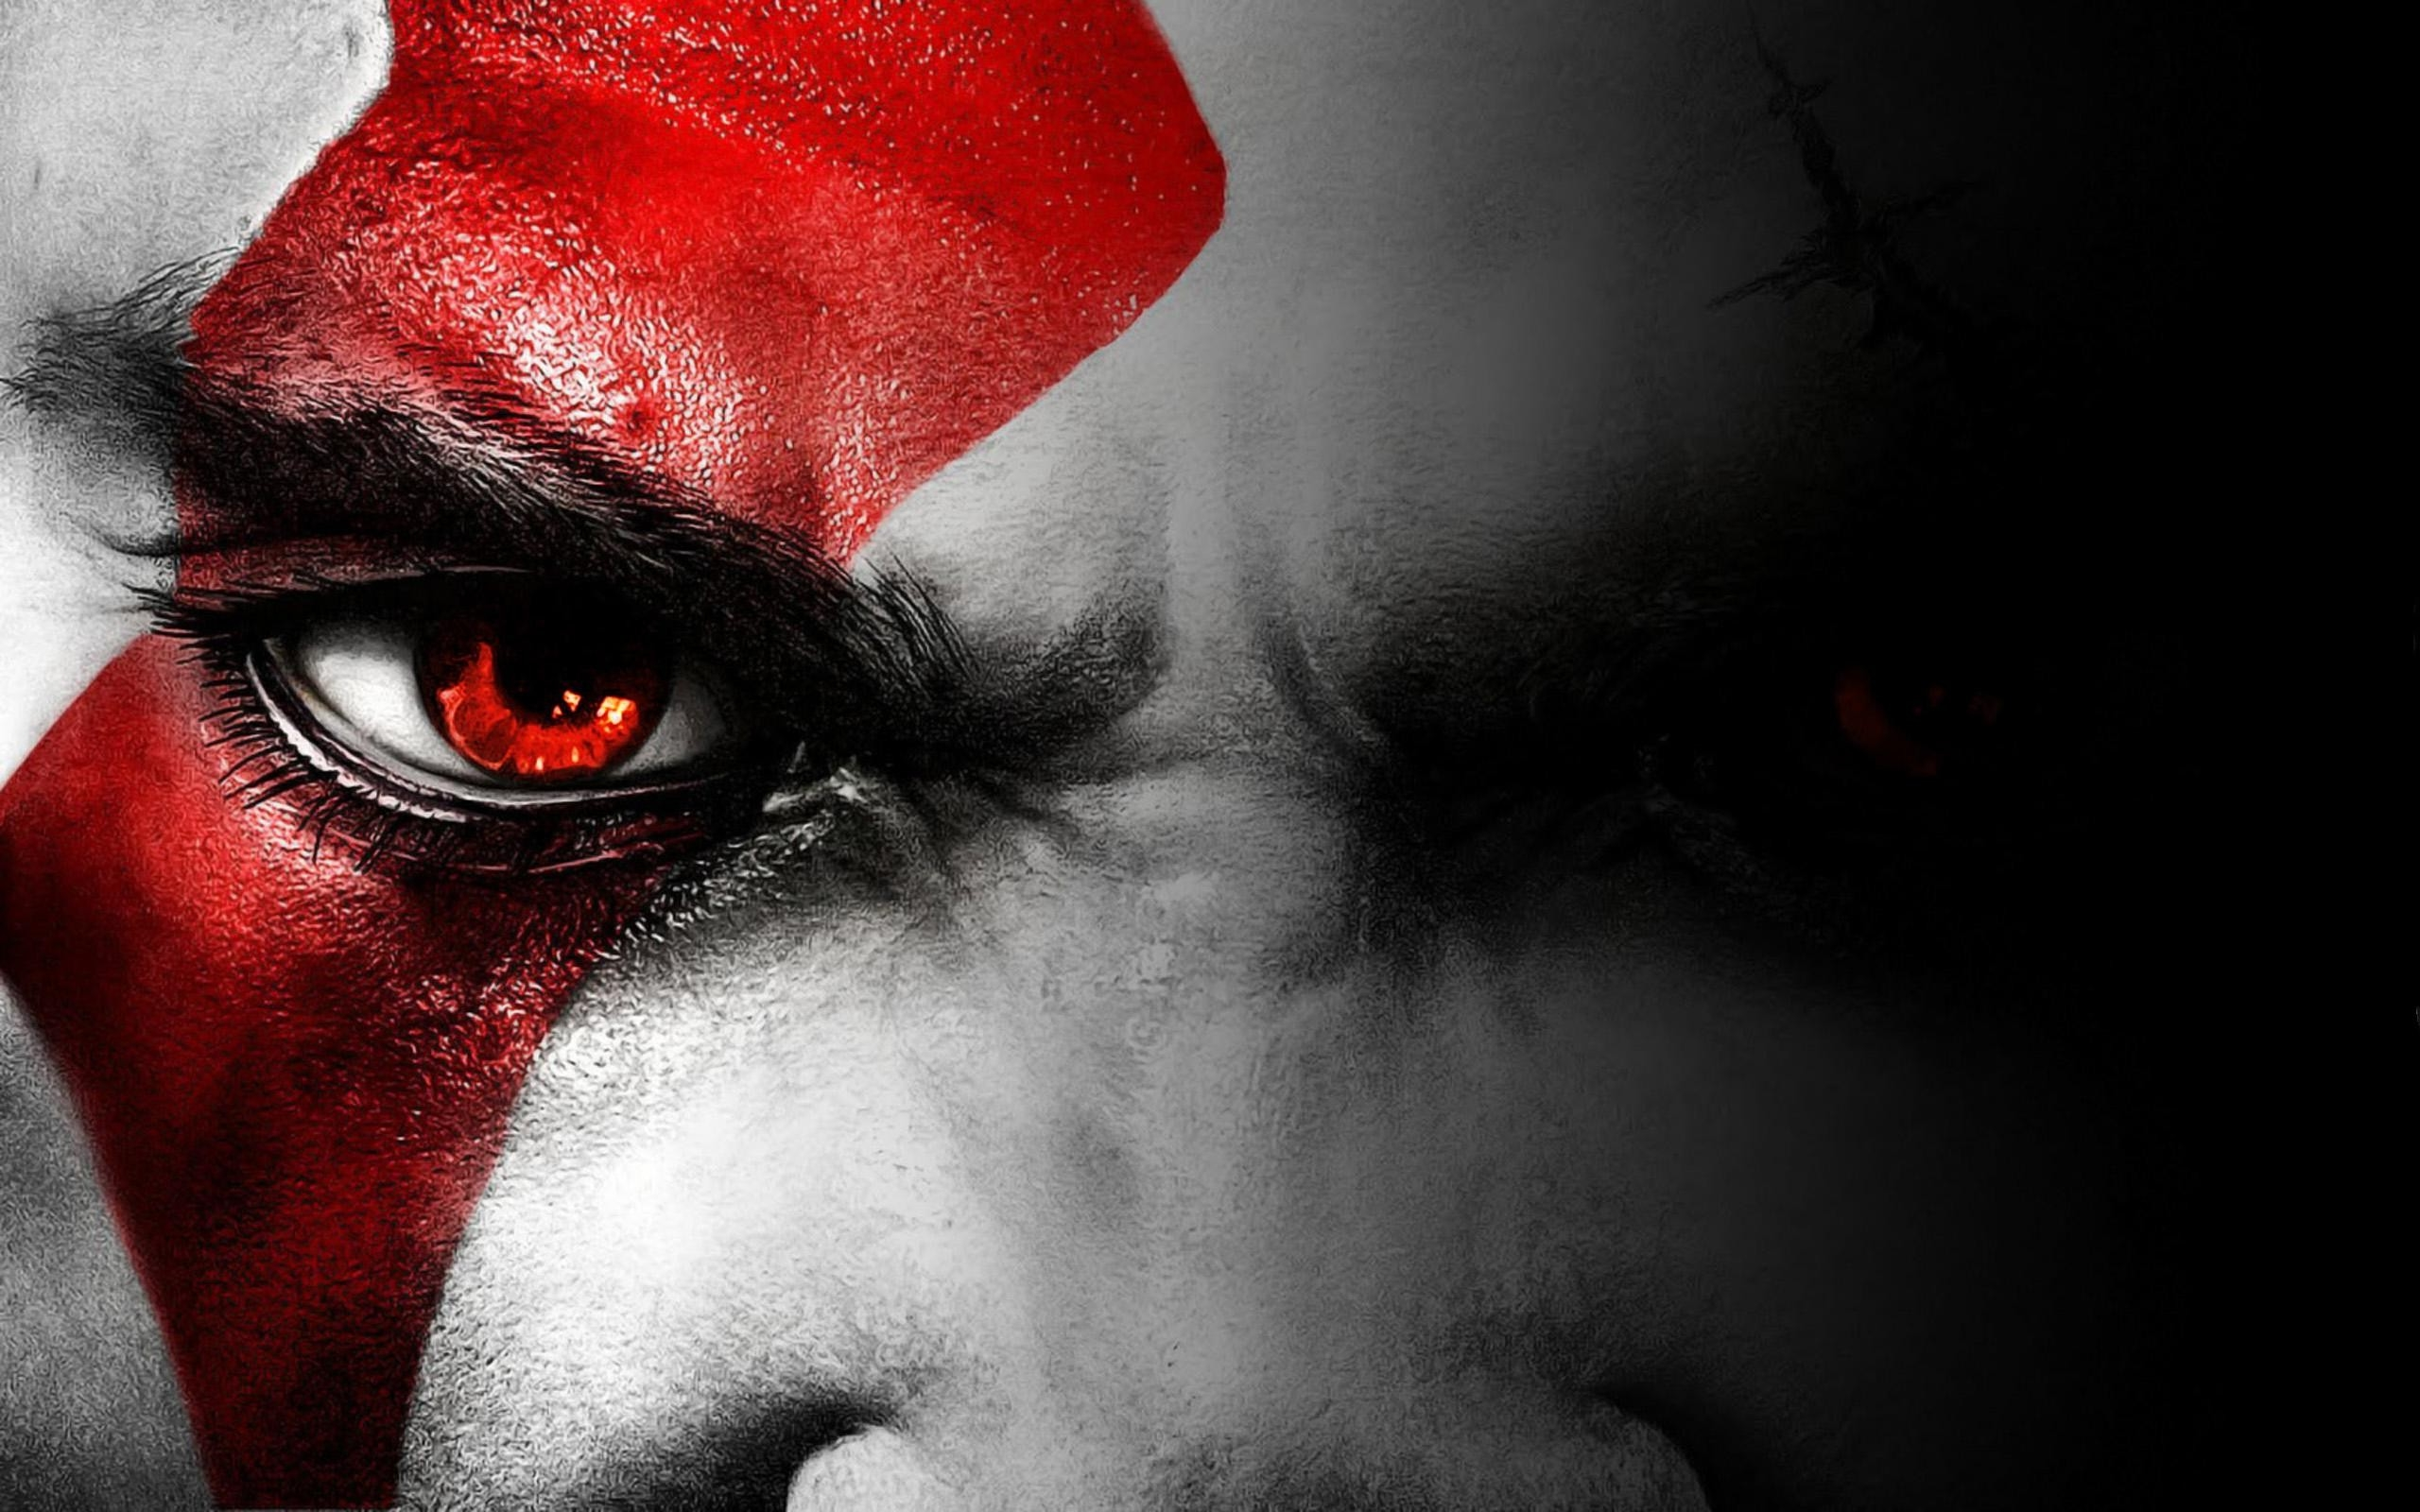 Asus 3d Wallpaper Hd God Of War Angry Face Wallpapers Hd Desktop And Mobile